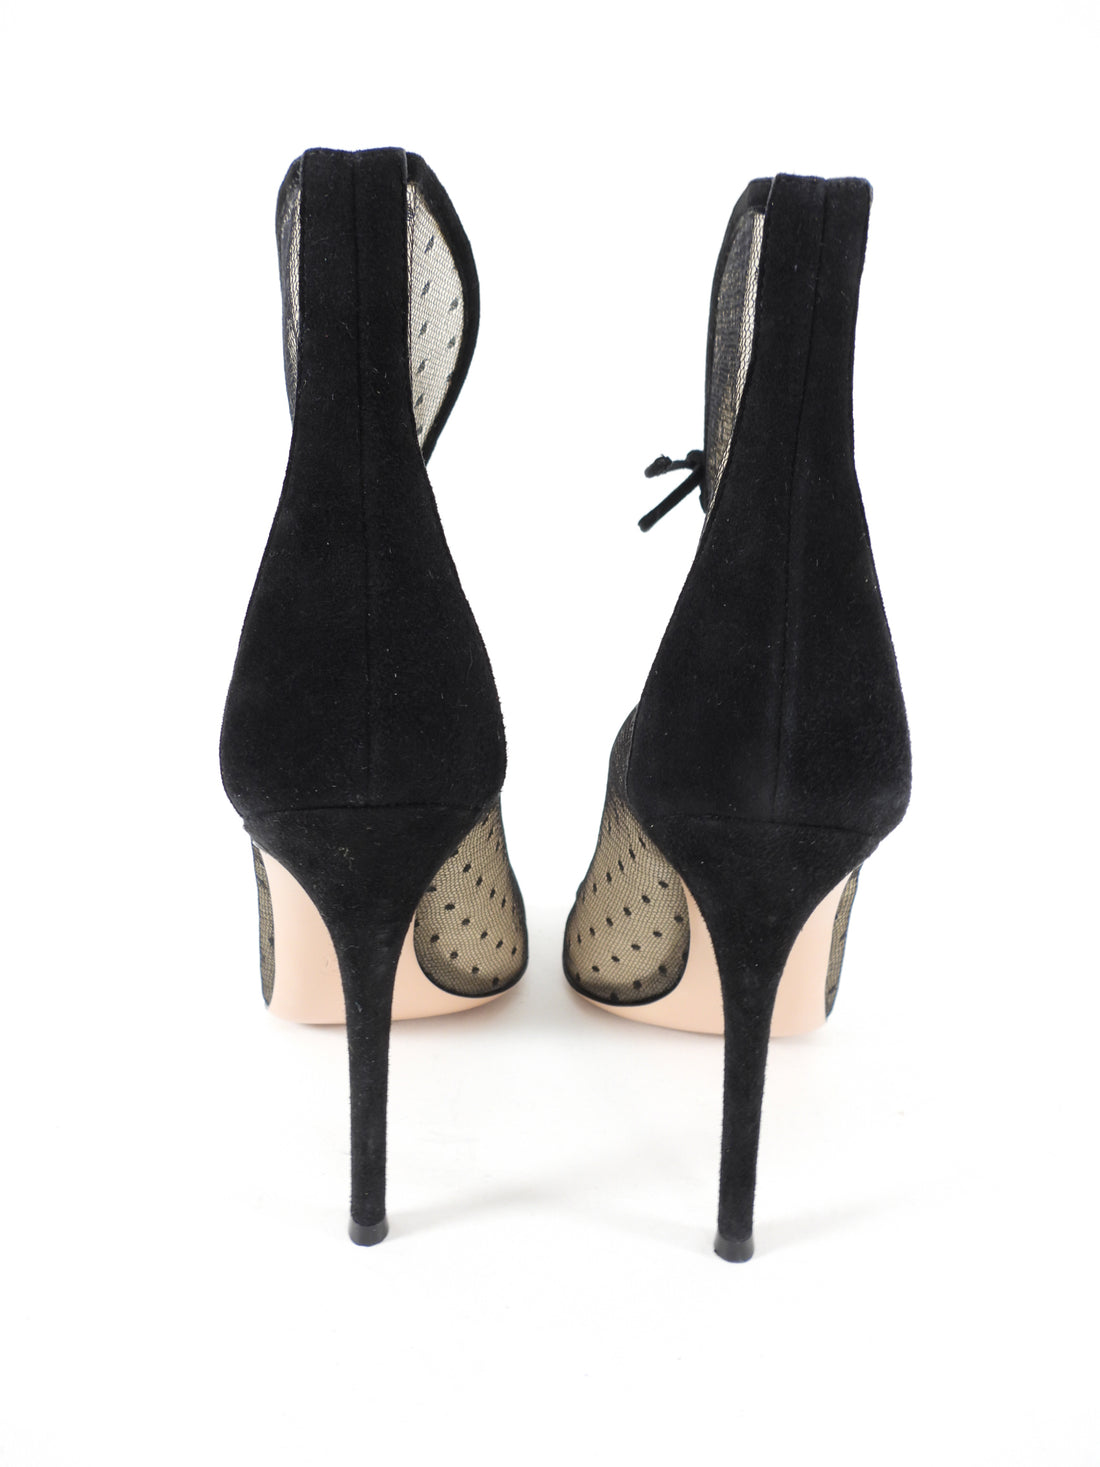 Gianvitto Rossi Black Mesh Suede Swiss Dot Heels - 41